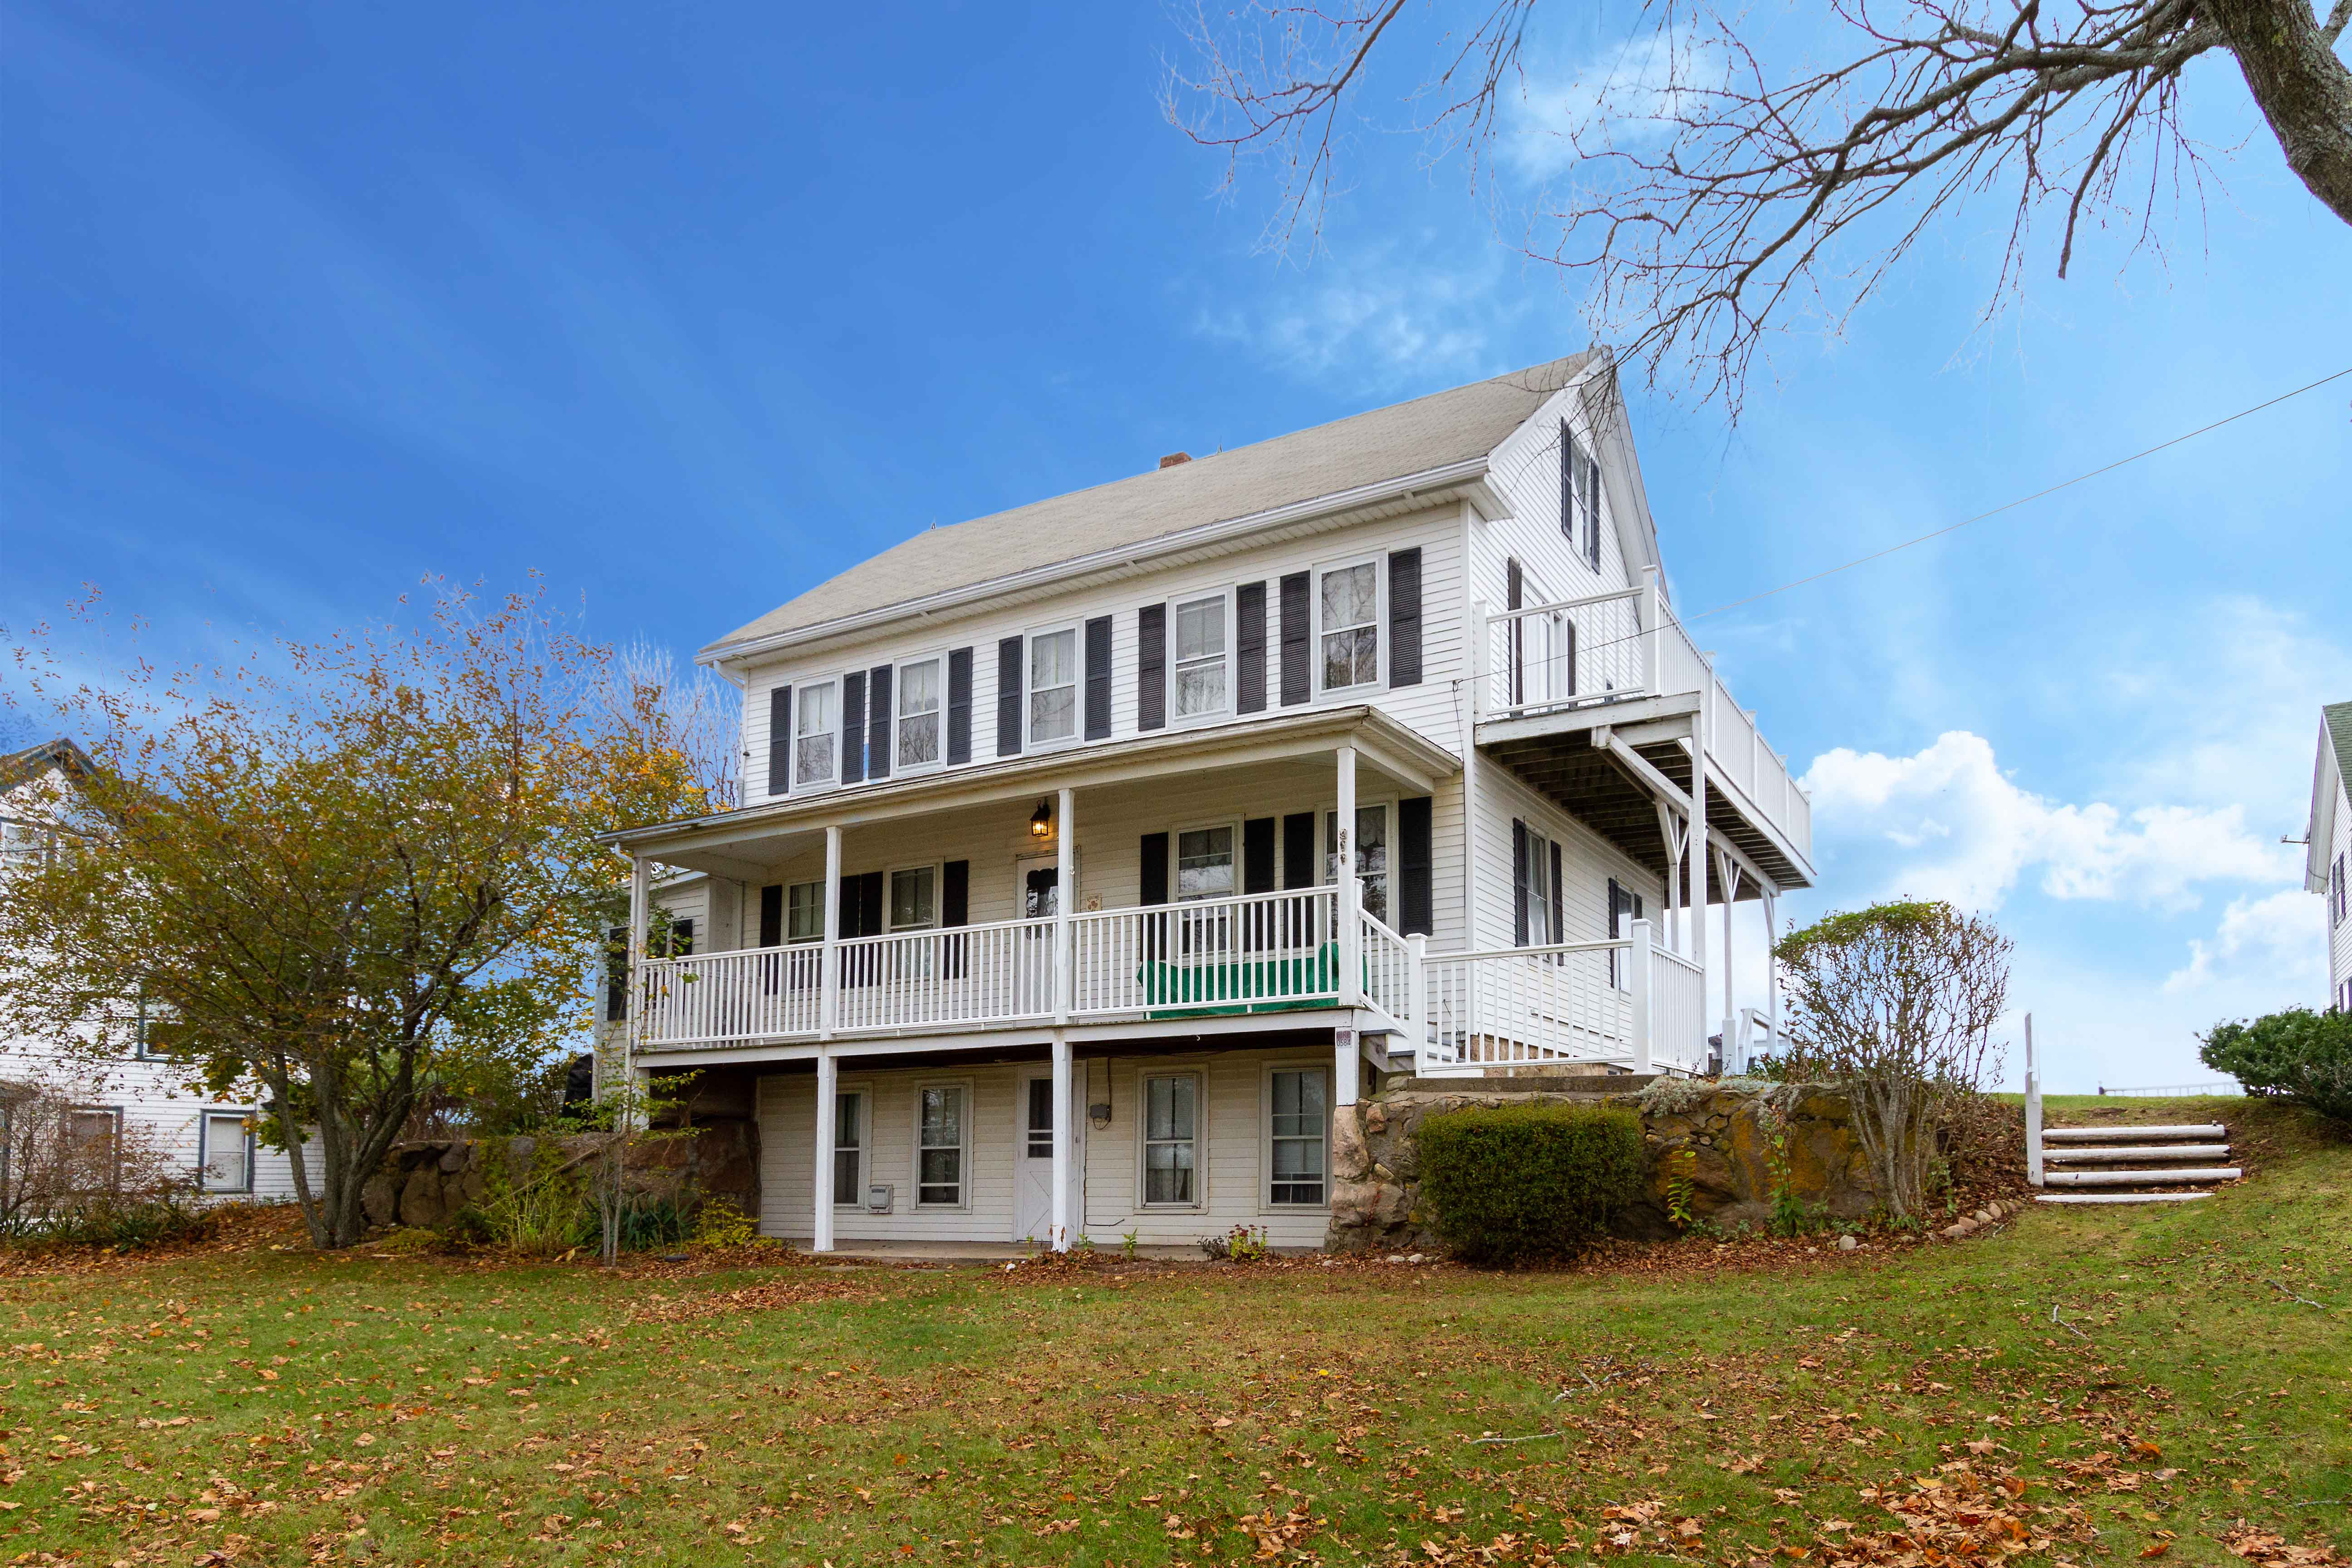 BLOCK ISLAND BED & BREAKFAST SELLS FOR $1,585,000, MARKING ONE OF THE TOP THREE SALE ON THE ISLAND THIS YEAR*